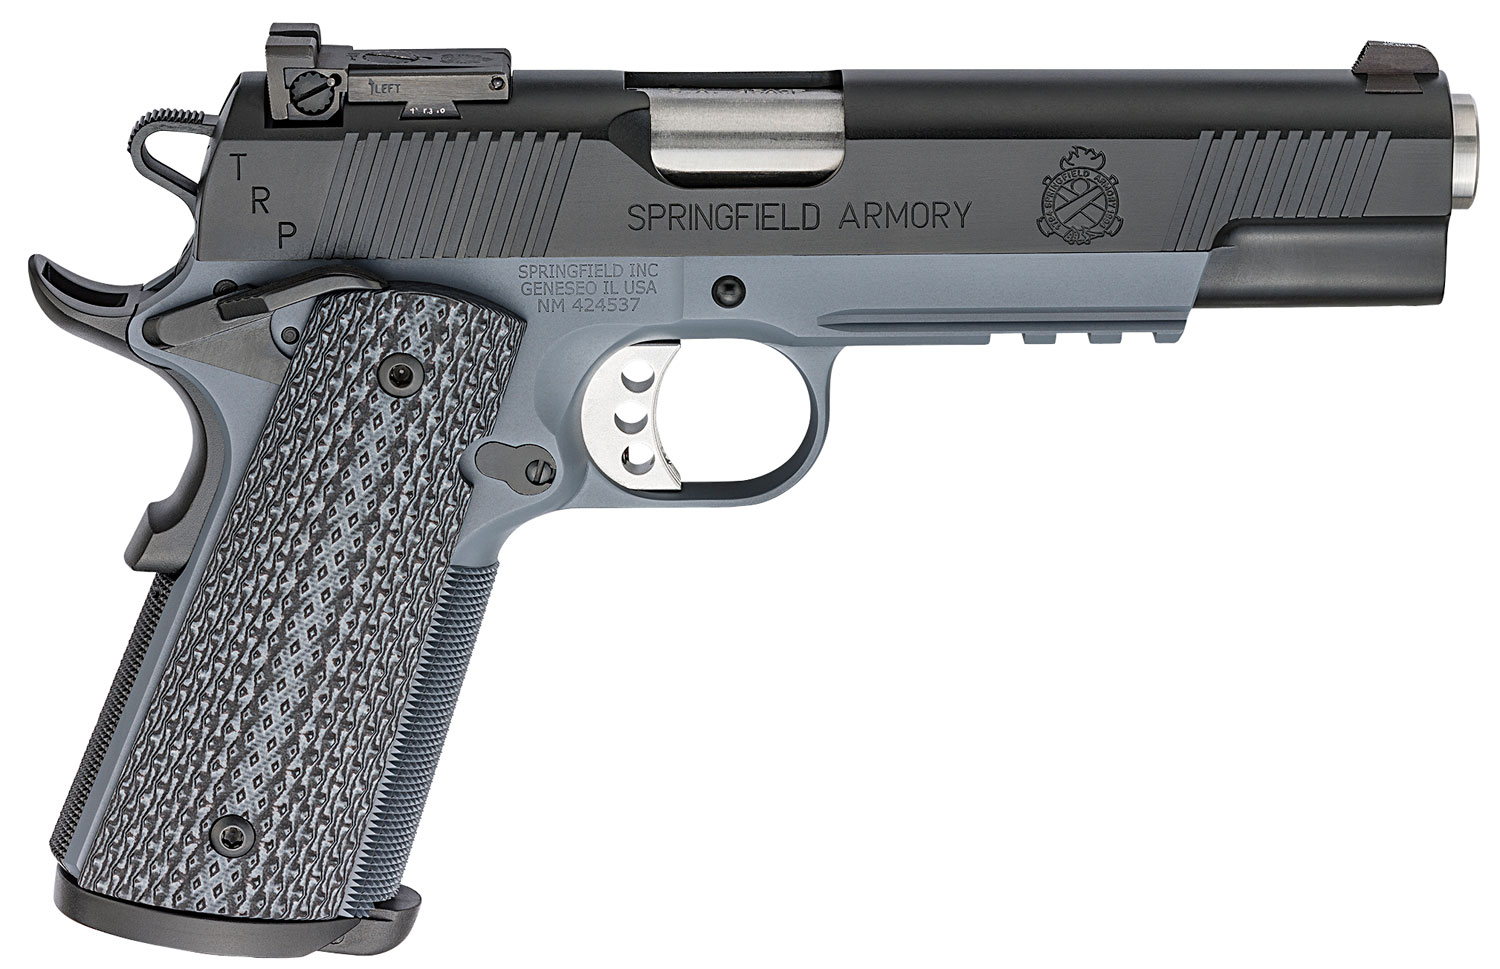 Springfield Armory PC9105GL18 1911 TRP Single 45 Automatic Colt Pistol (ACP) 5